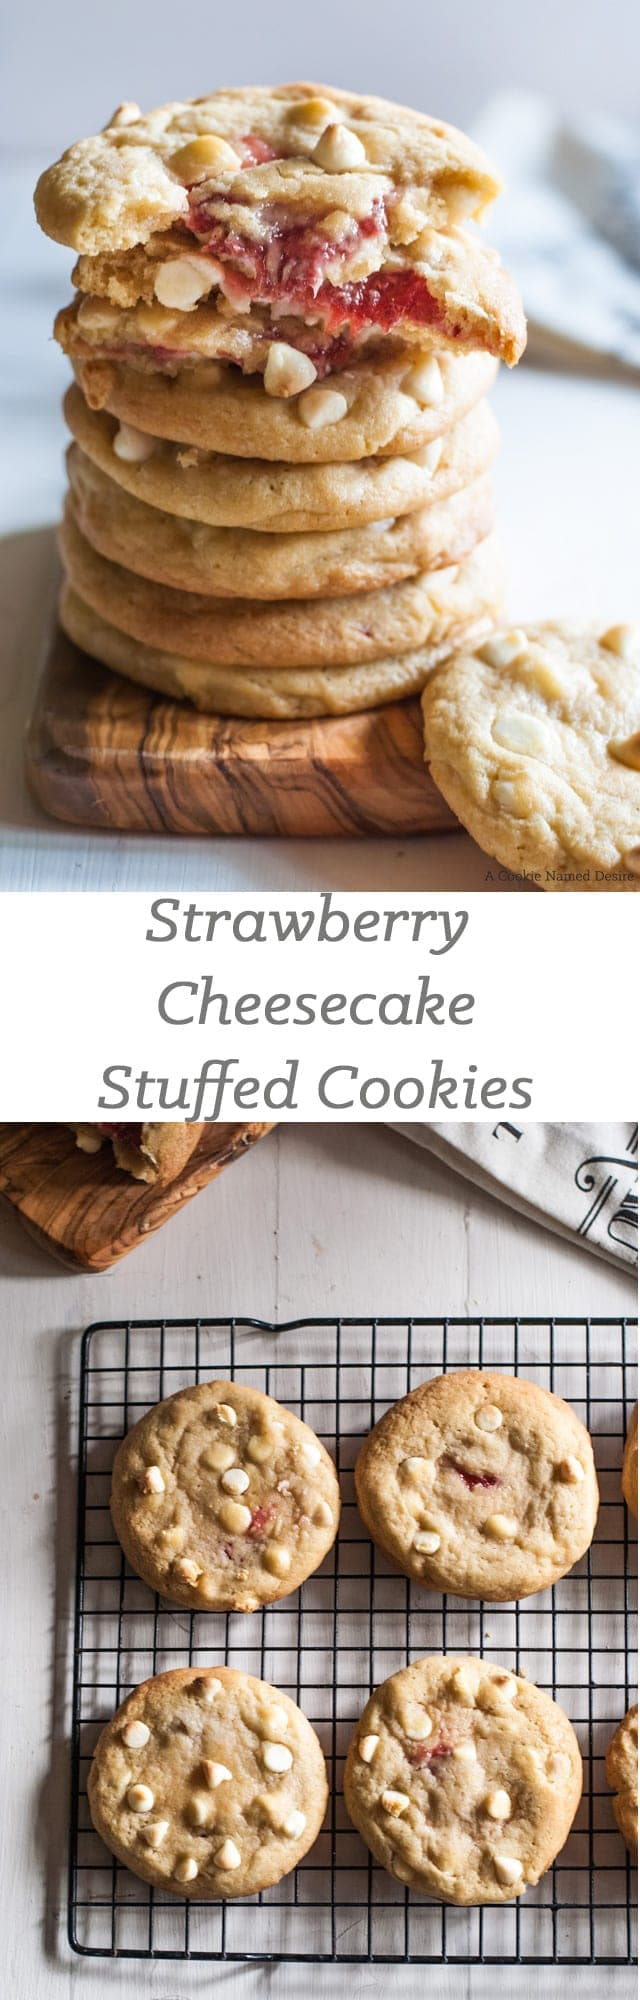 strawberry cheesecake stuffed cookies recipe